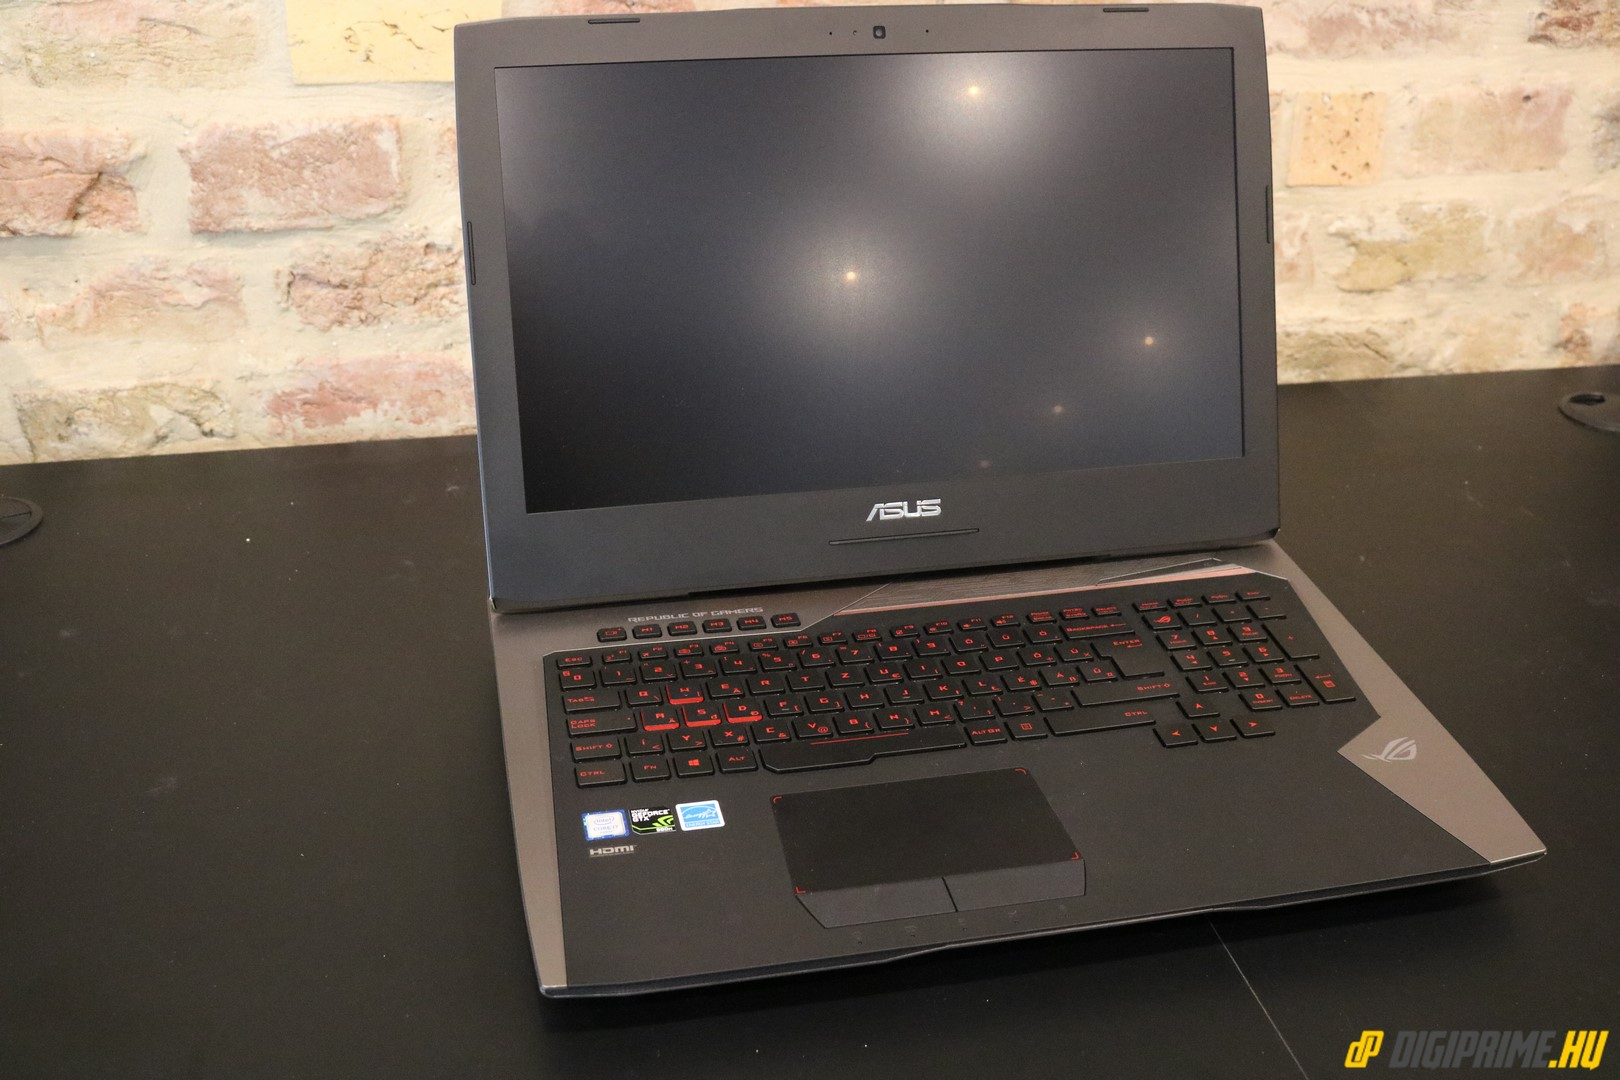 asus rog g752vy gc144t 01 digiprime.hu